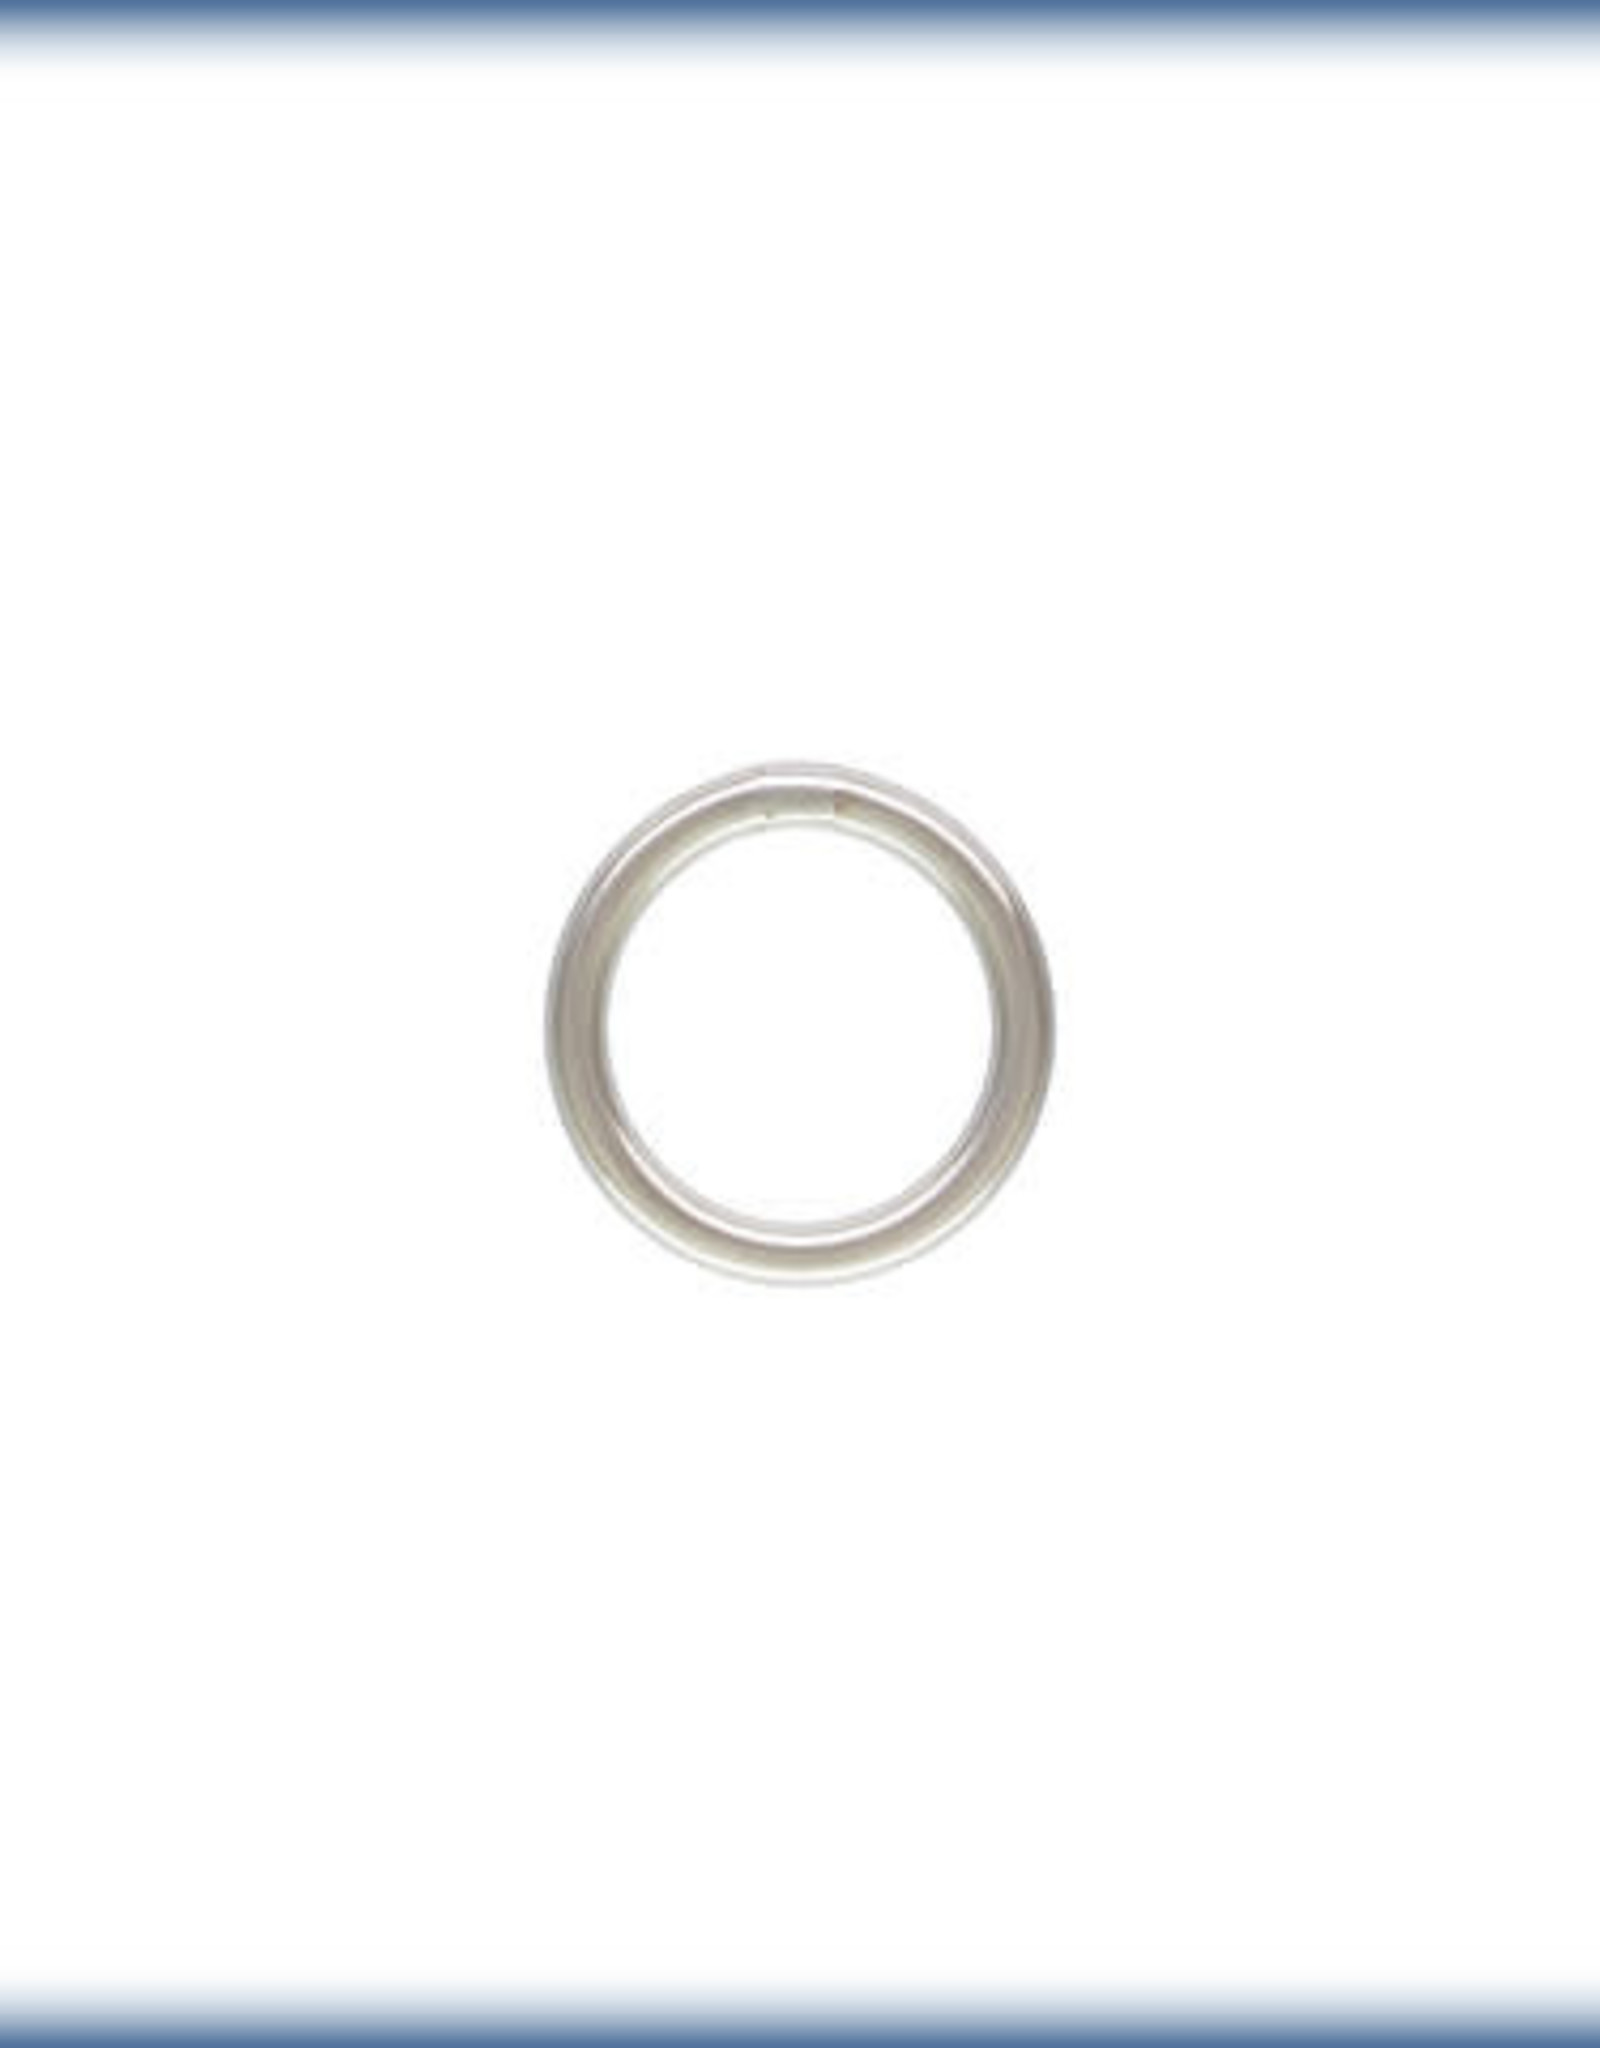 5mm Closed Ring 21ga Sterling Silver Qty 10